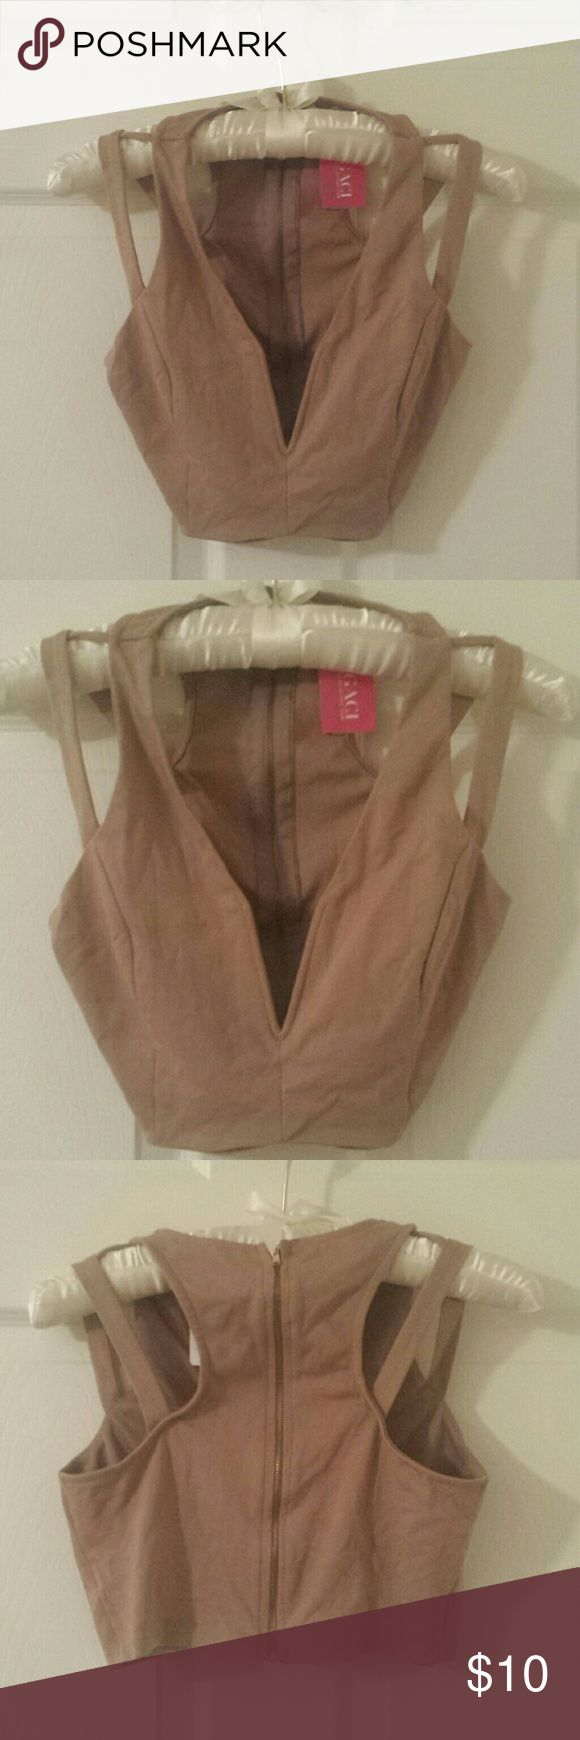 A'GACI nude strappy crop top Zips up the back. Deep Vee neckline. Nude color. Size small. Worm once to try on. a'gaci Tops Crop Tops